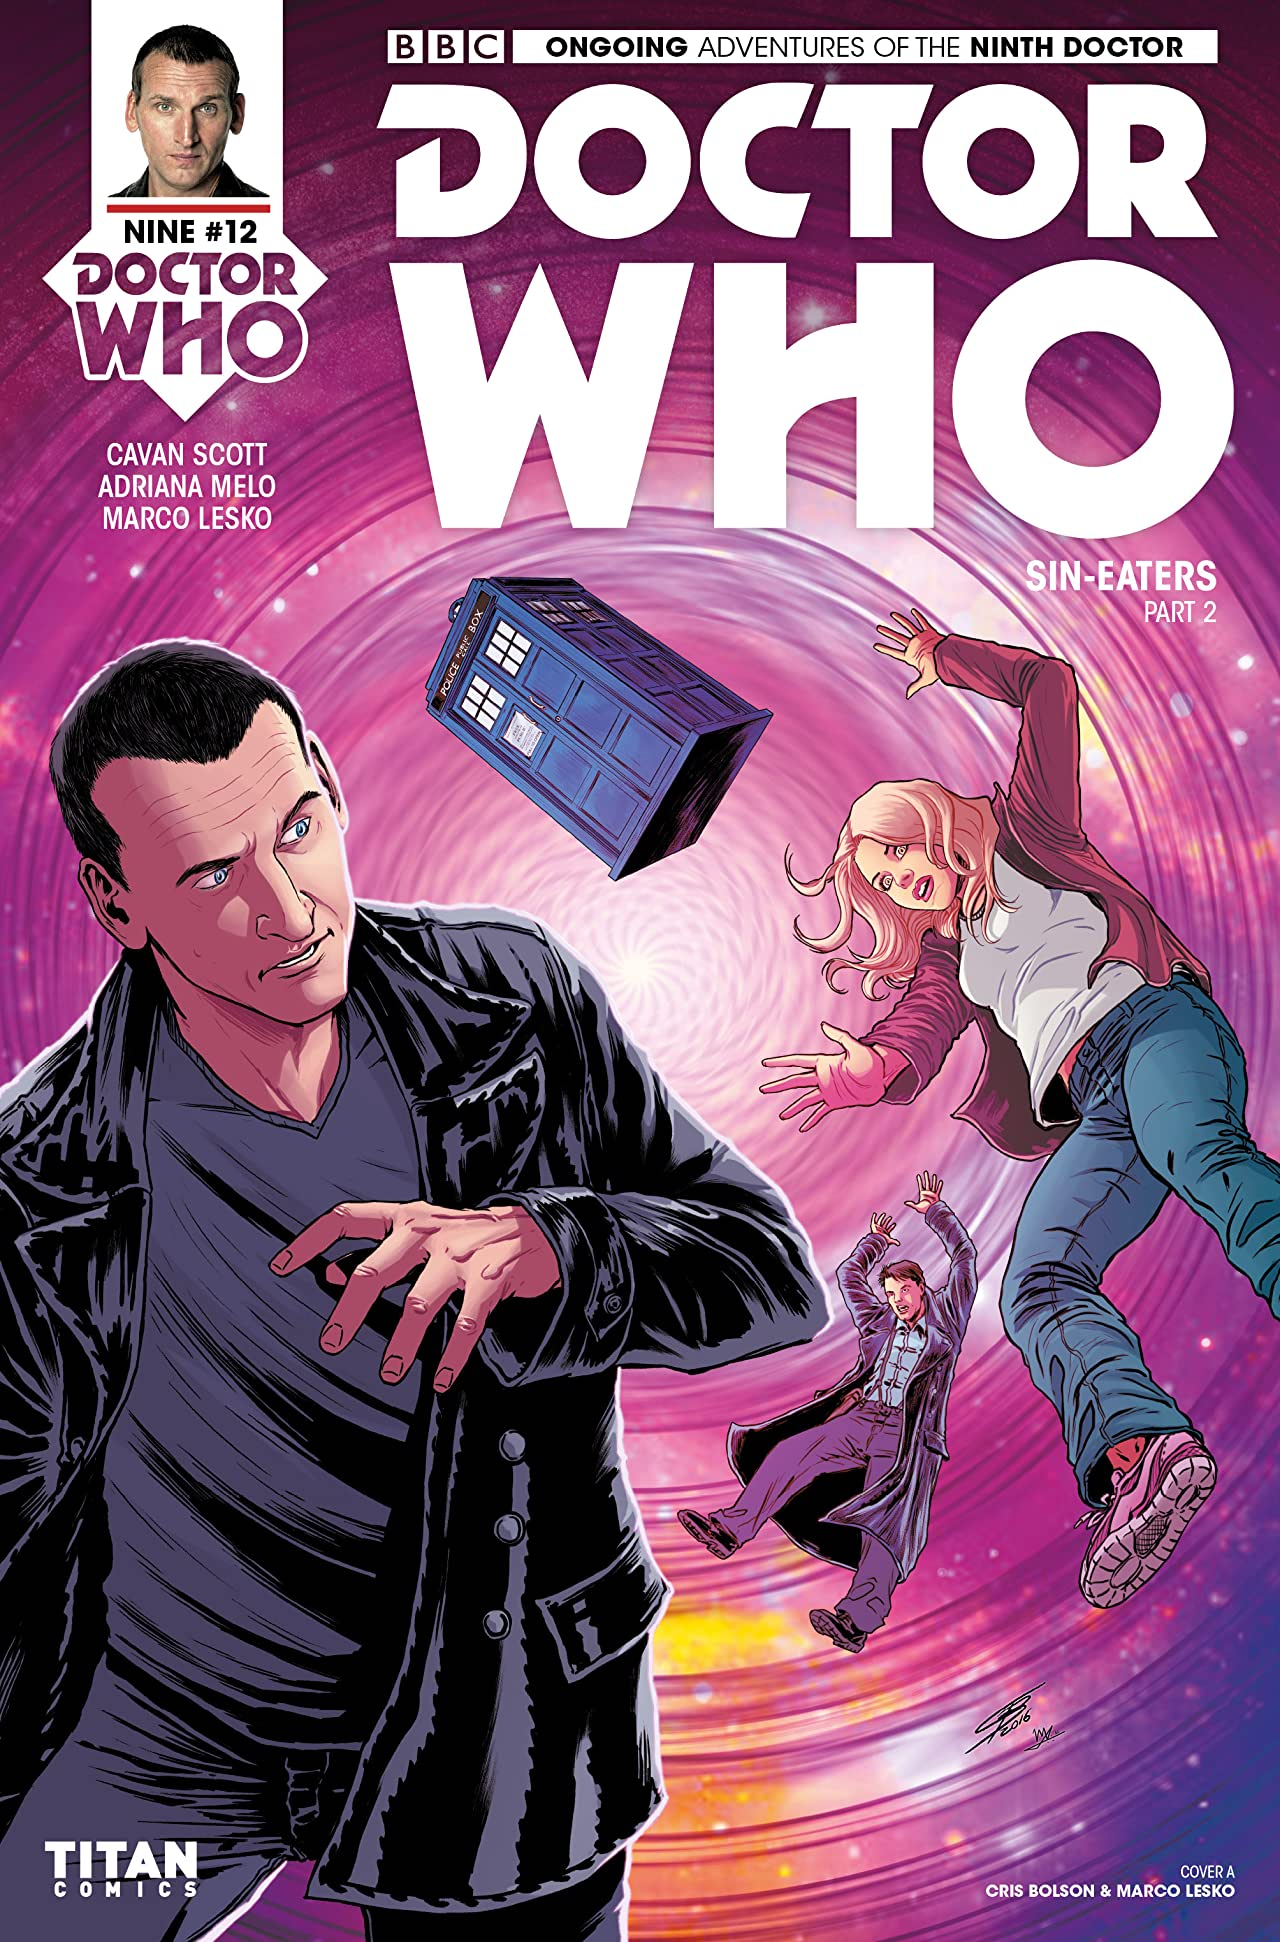 Doctor Who: The Ninth Doctor #2.12